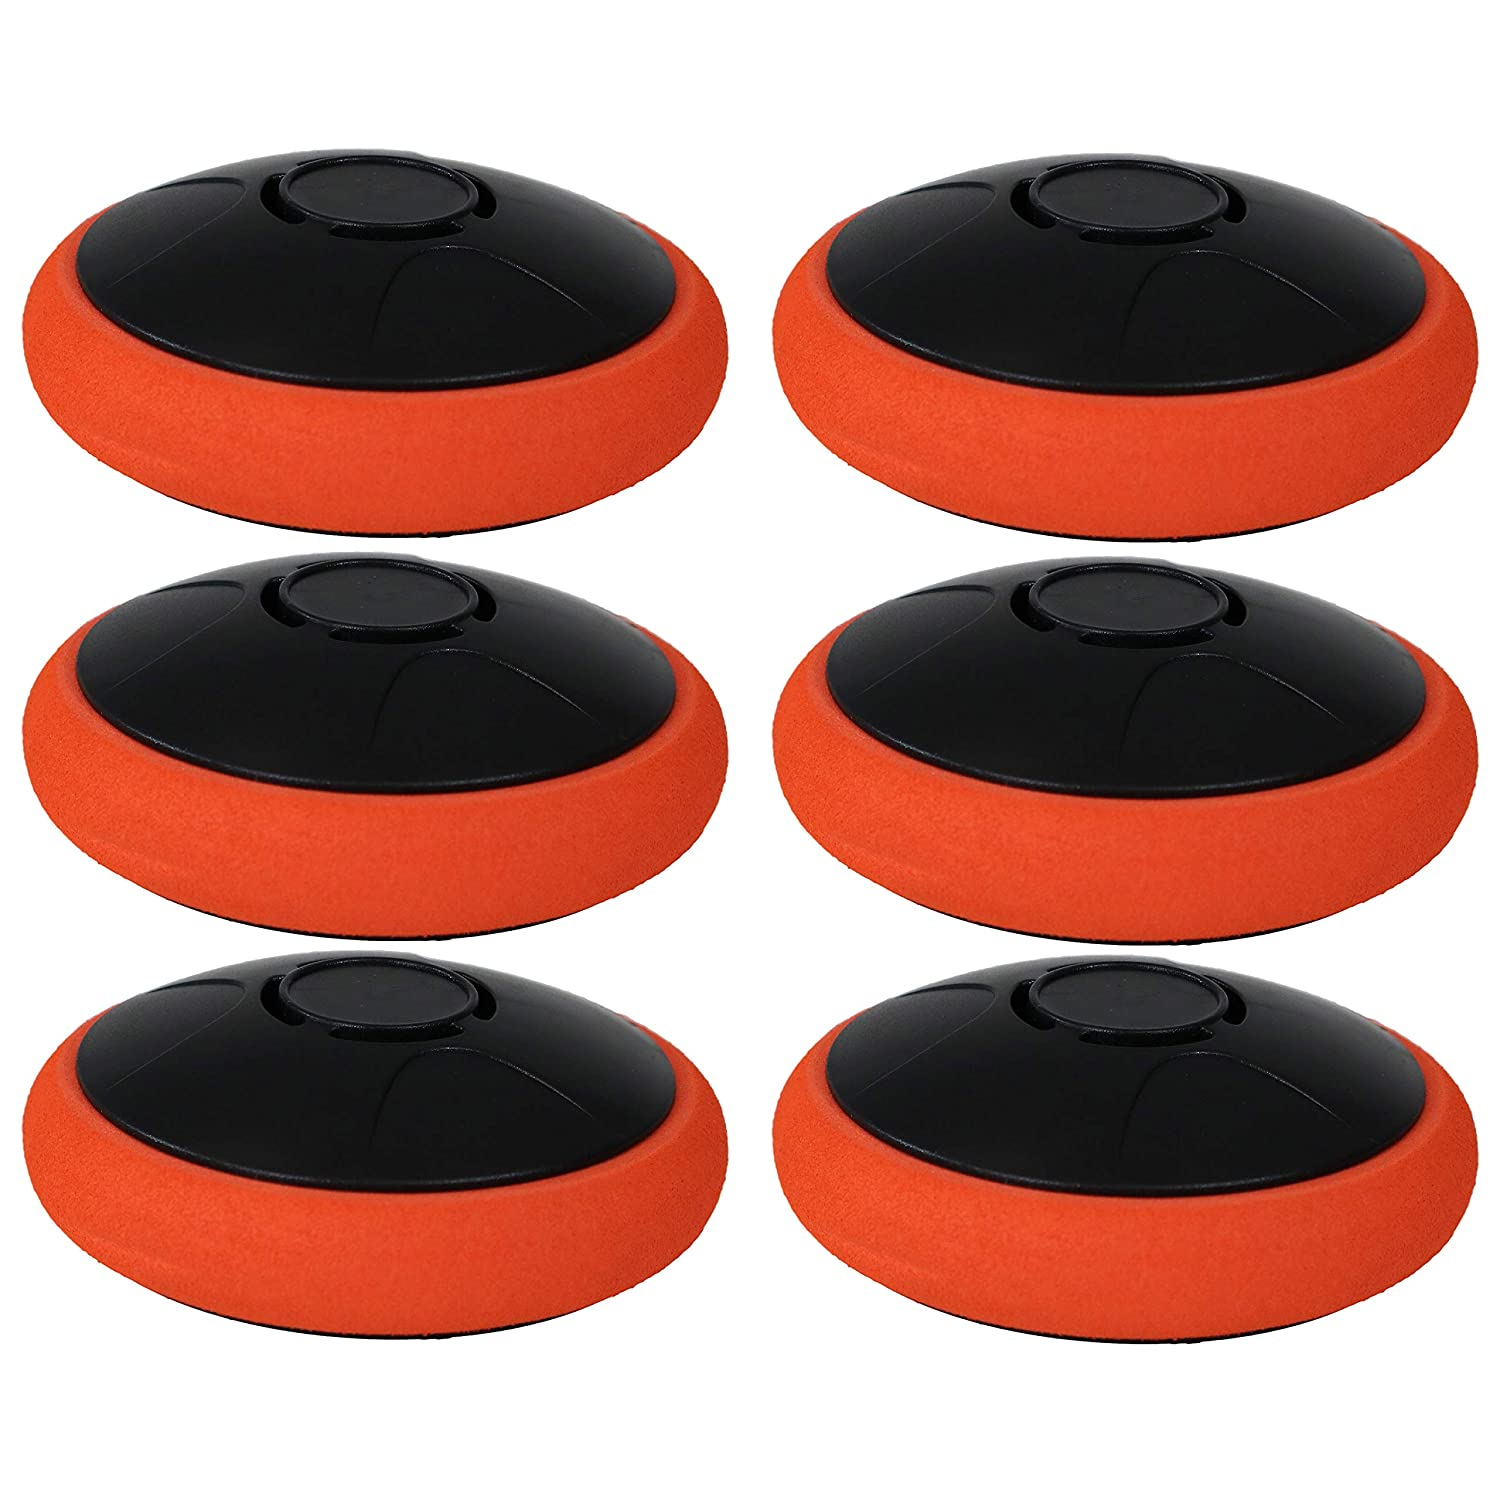 Sunnydaze Tabletop Rechargeable Hockey Hover Puck Choose Quantity 2-Inch